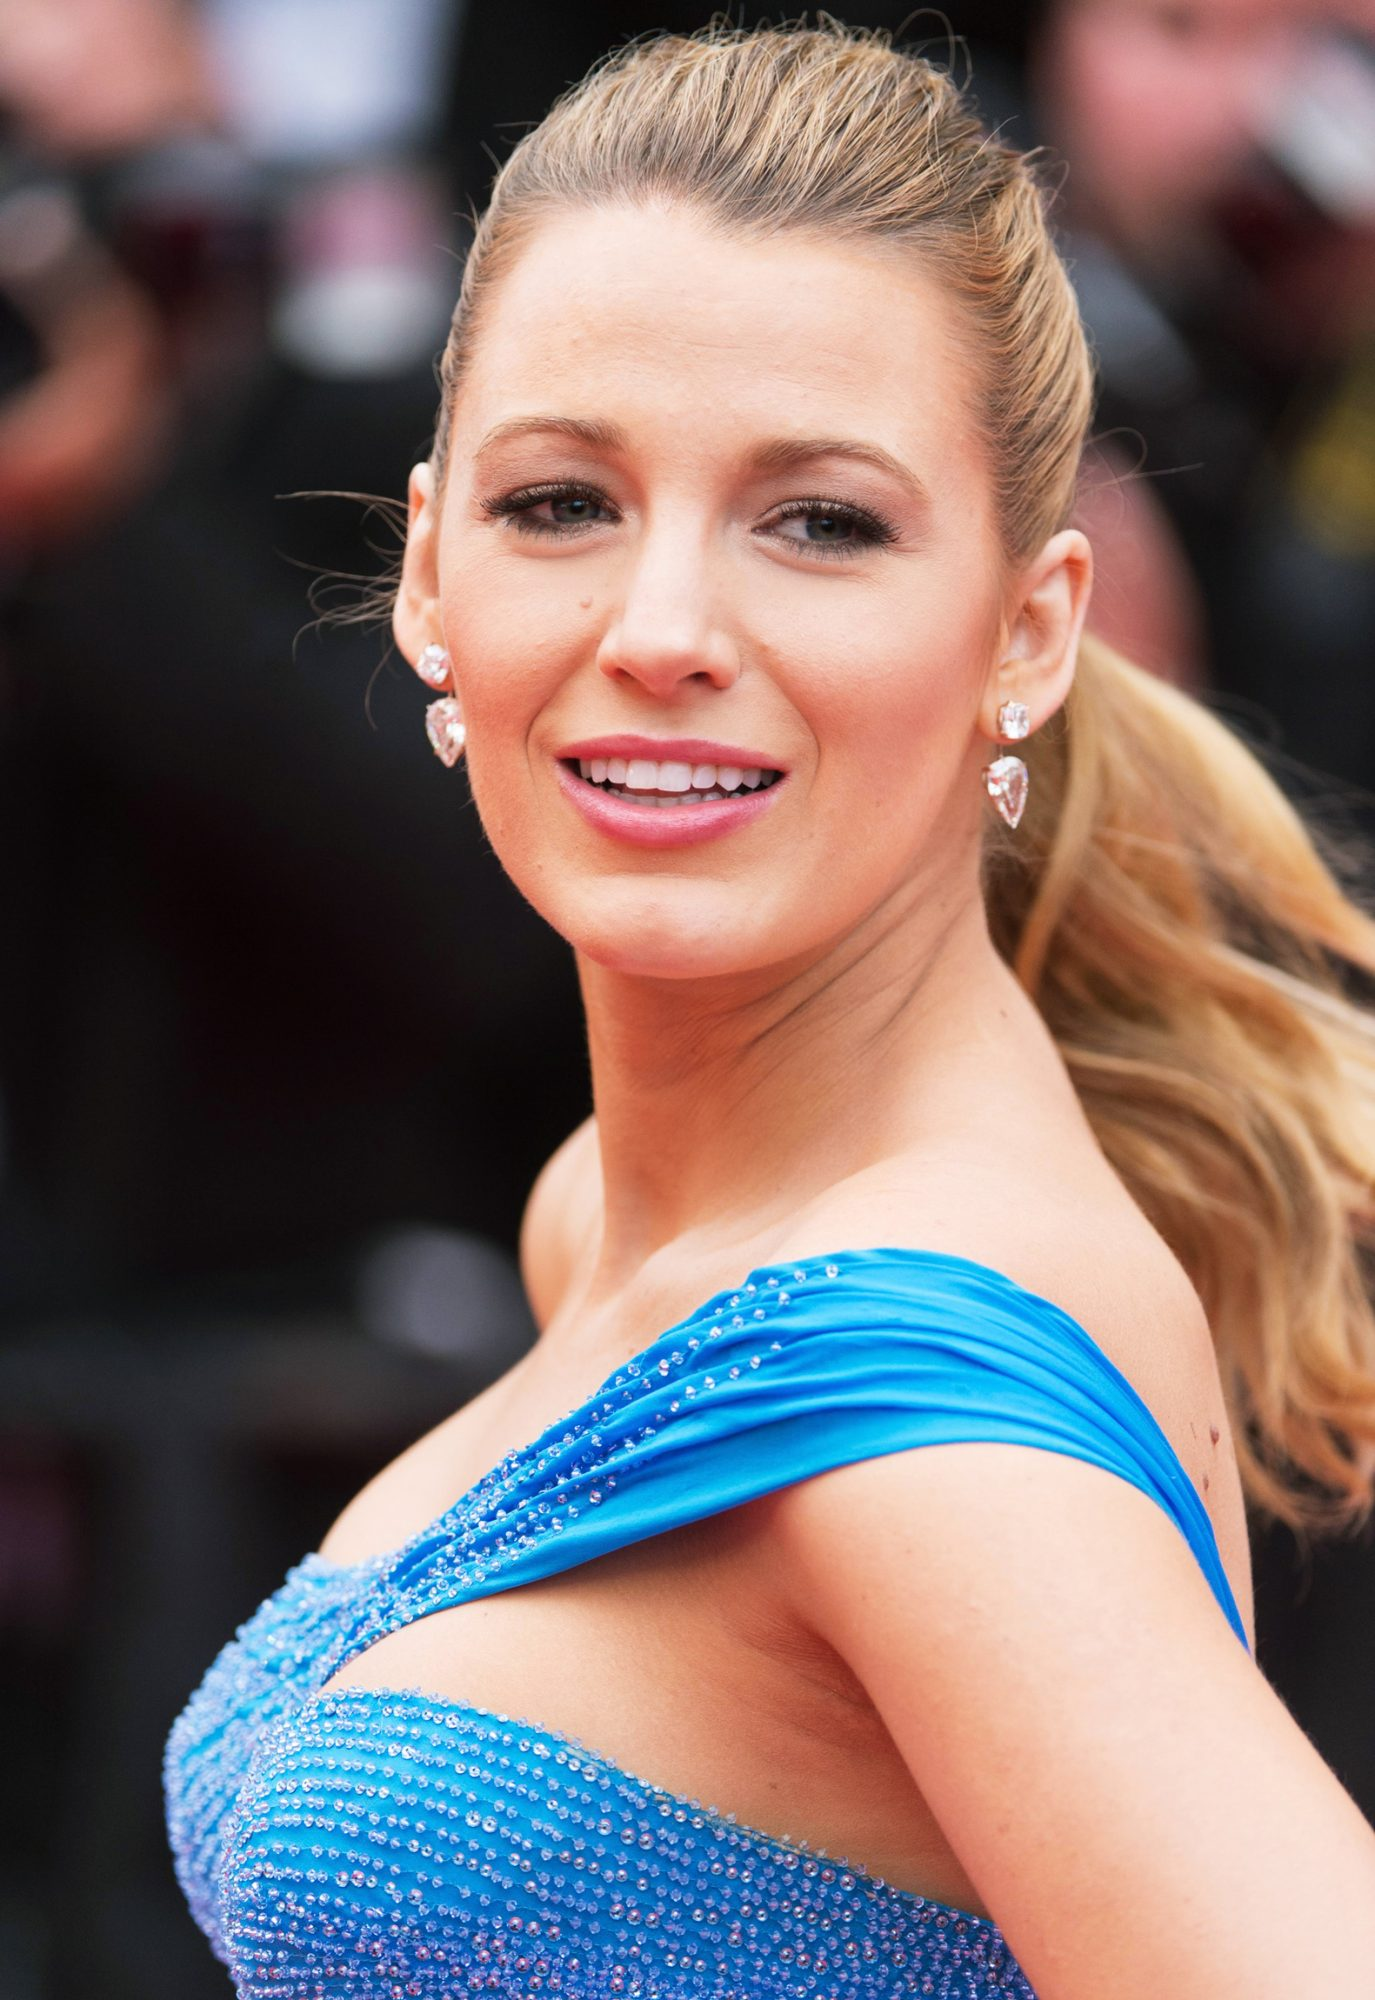 You Will Never Believe Who Inspired Blake Lively's Latest Look